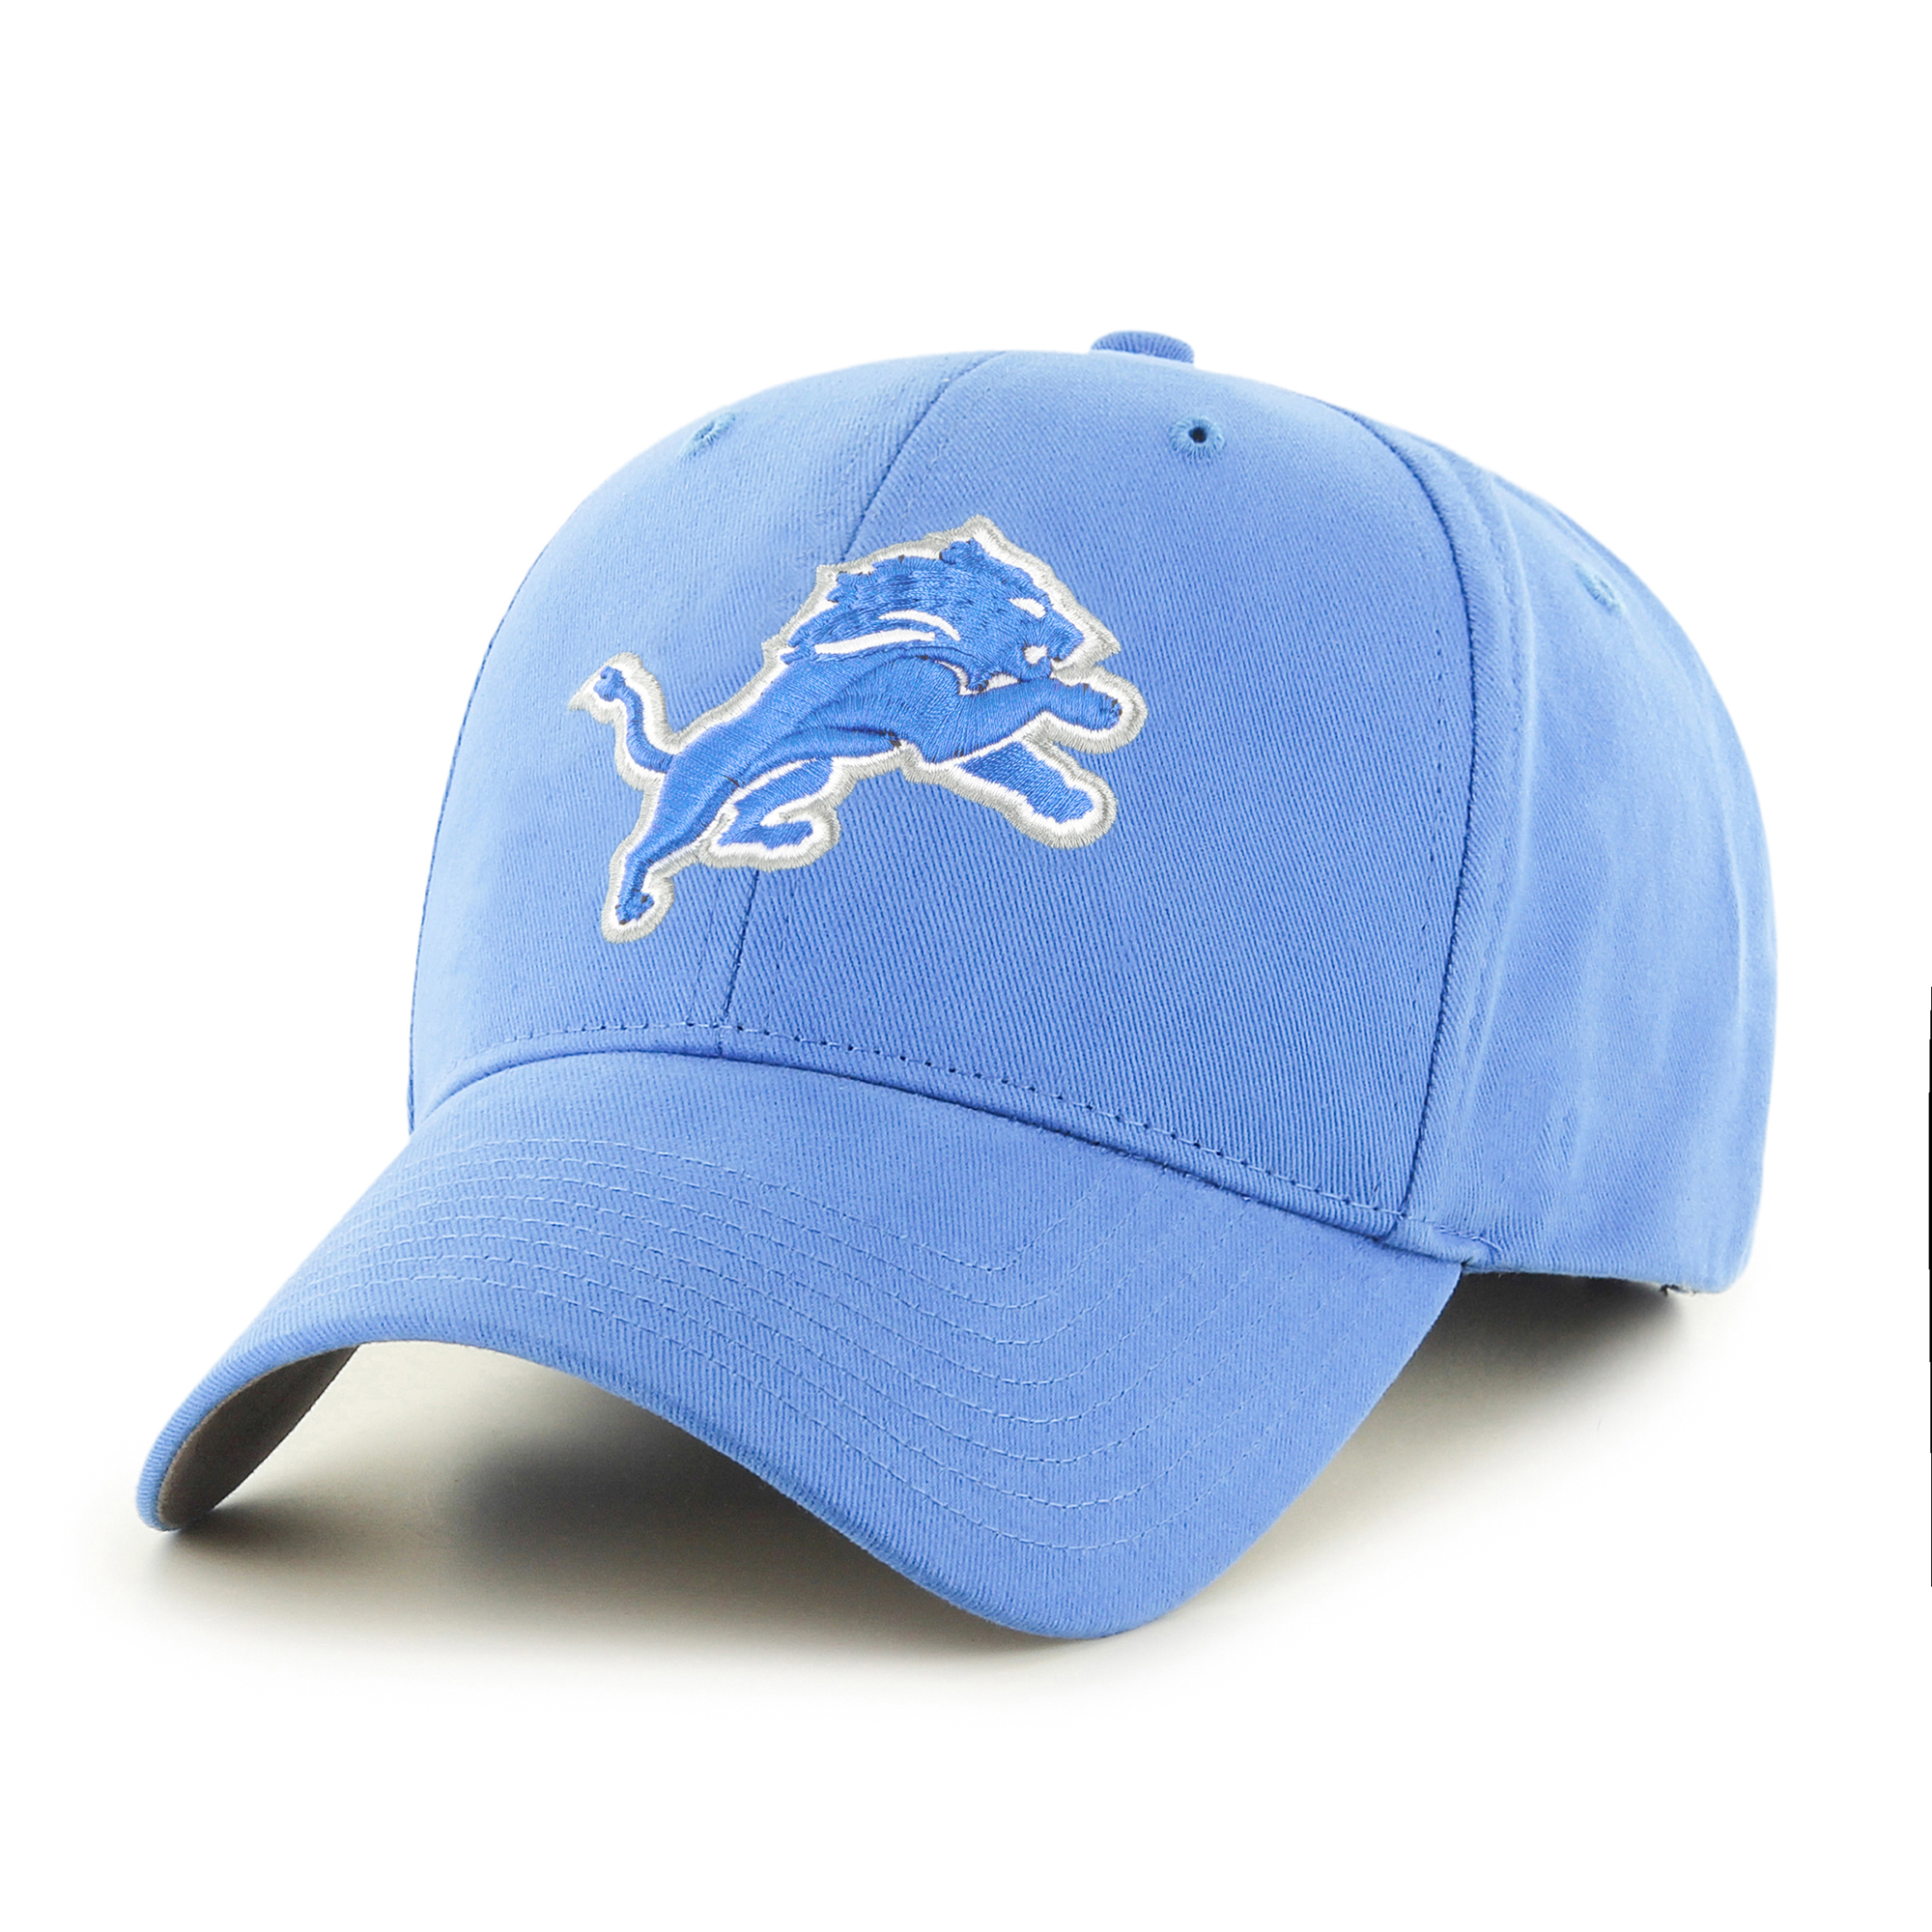 NFL Detroit Lions Basic Adjustable Cap/Hat by Fan Favorite